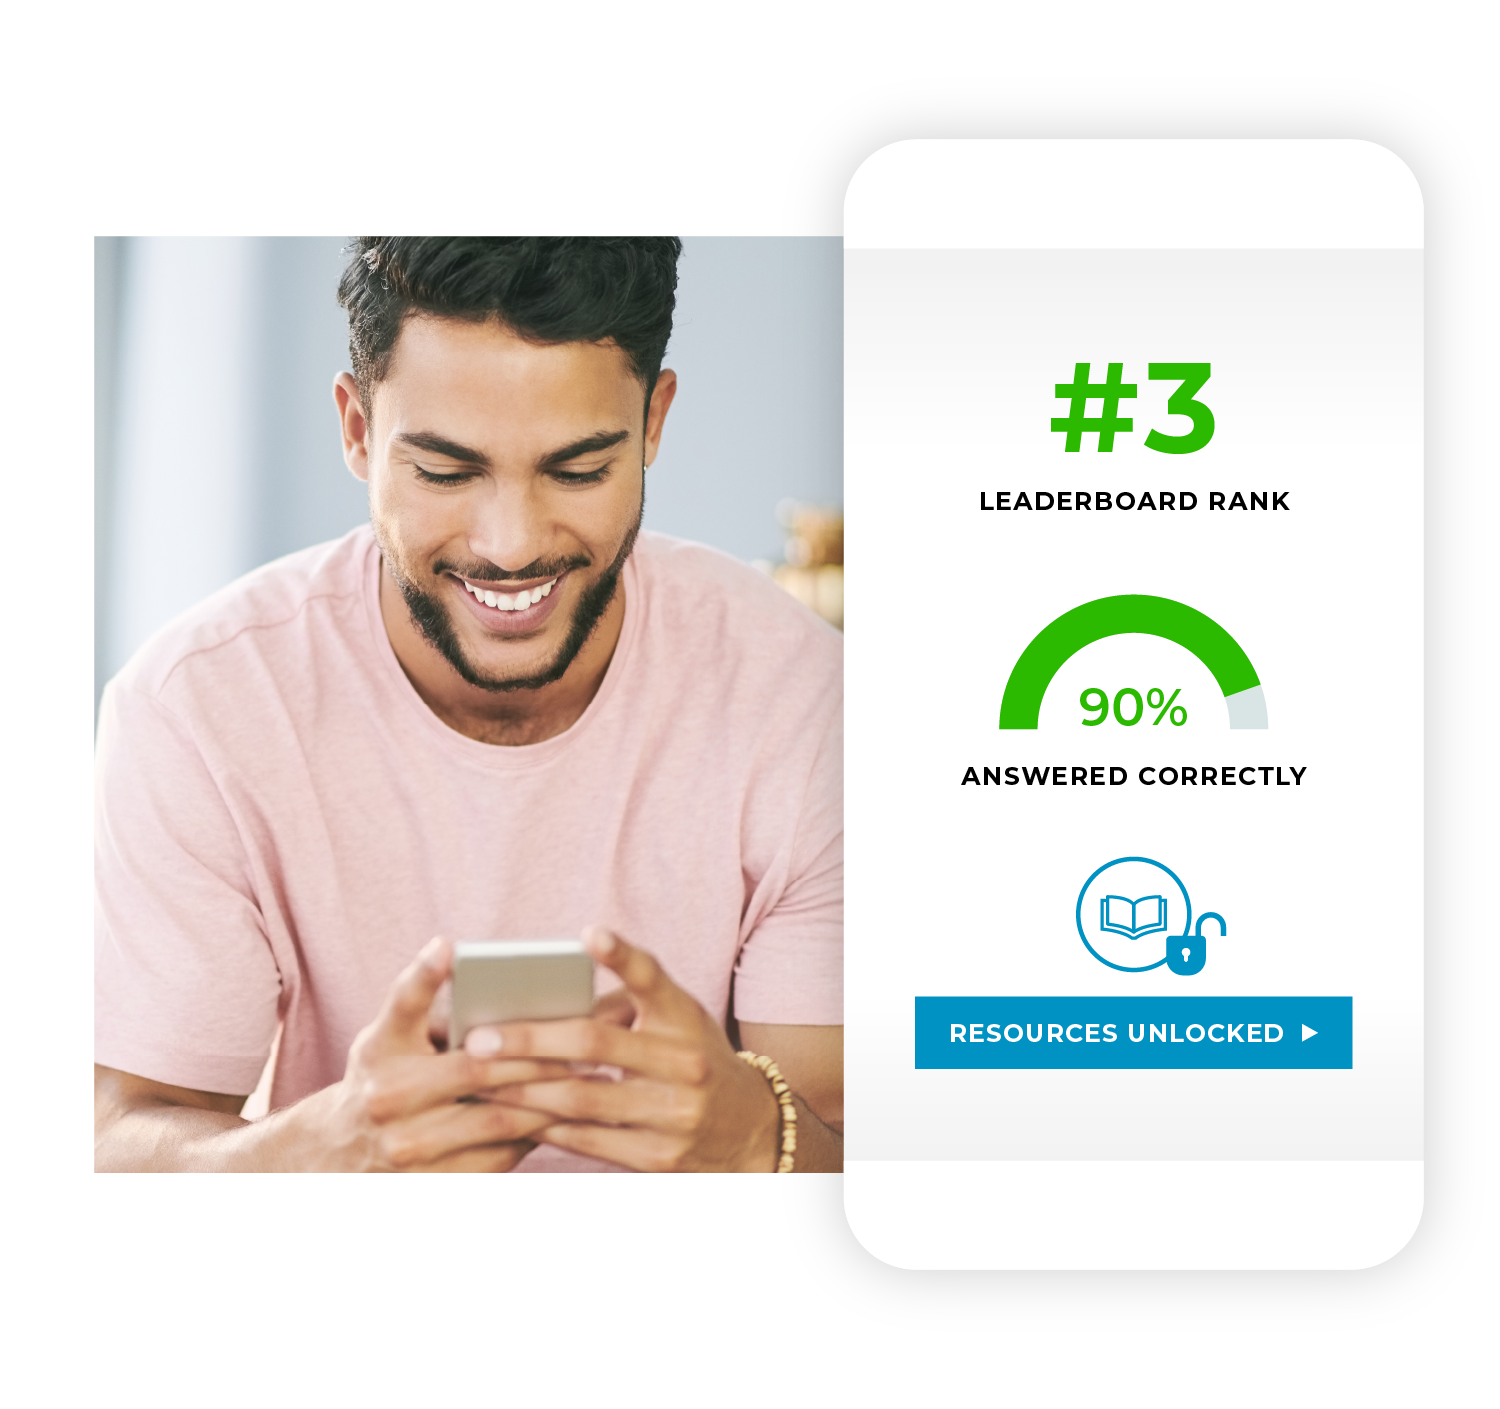 Man on phone with infographic depicting increased employee engagement and satisfaction with learning programs.